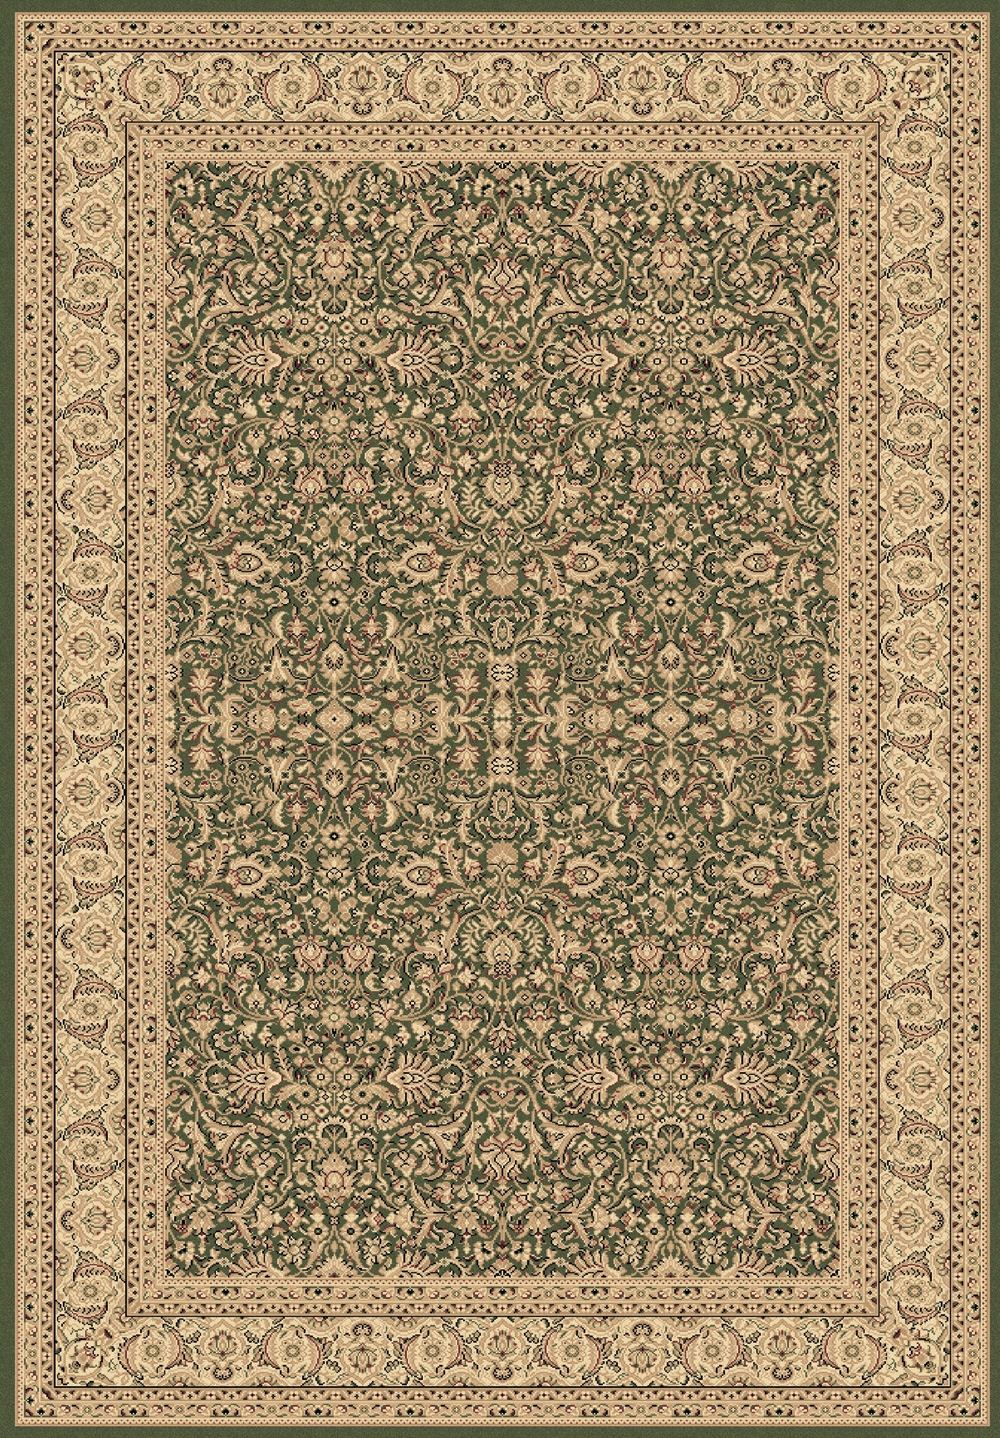 Green 58004 420 Legacy Rug By Dynamic